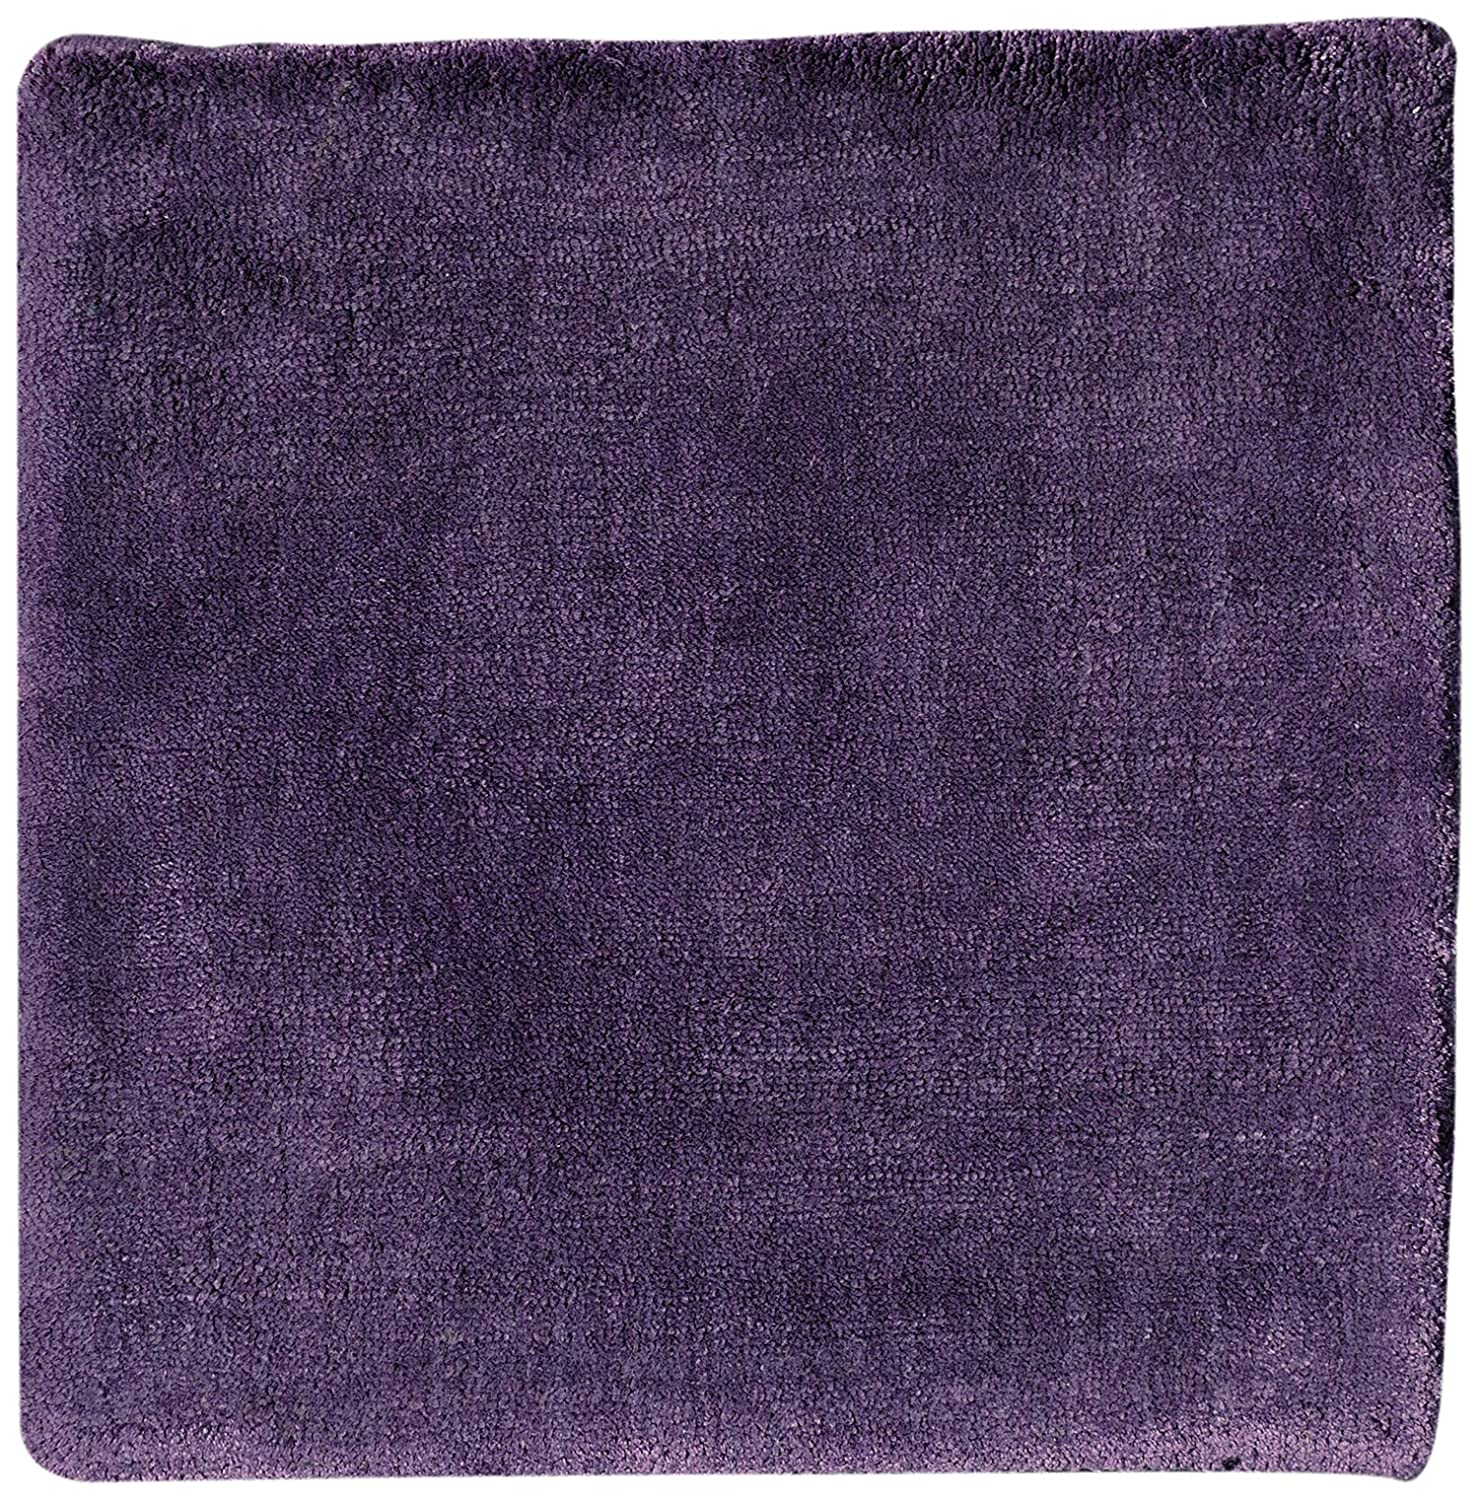 Toulemonde bochart Collection linea Modell Diams Teppich Viskose Aubergine 300 x 200 cm